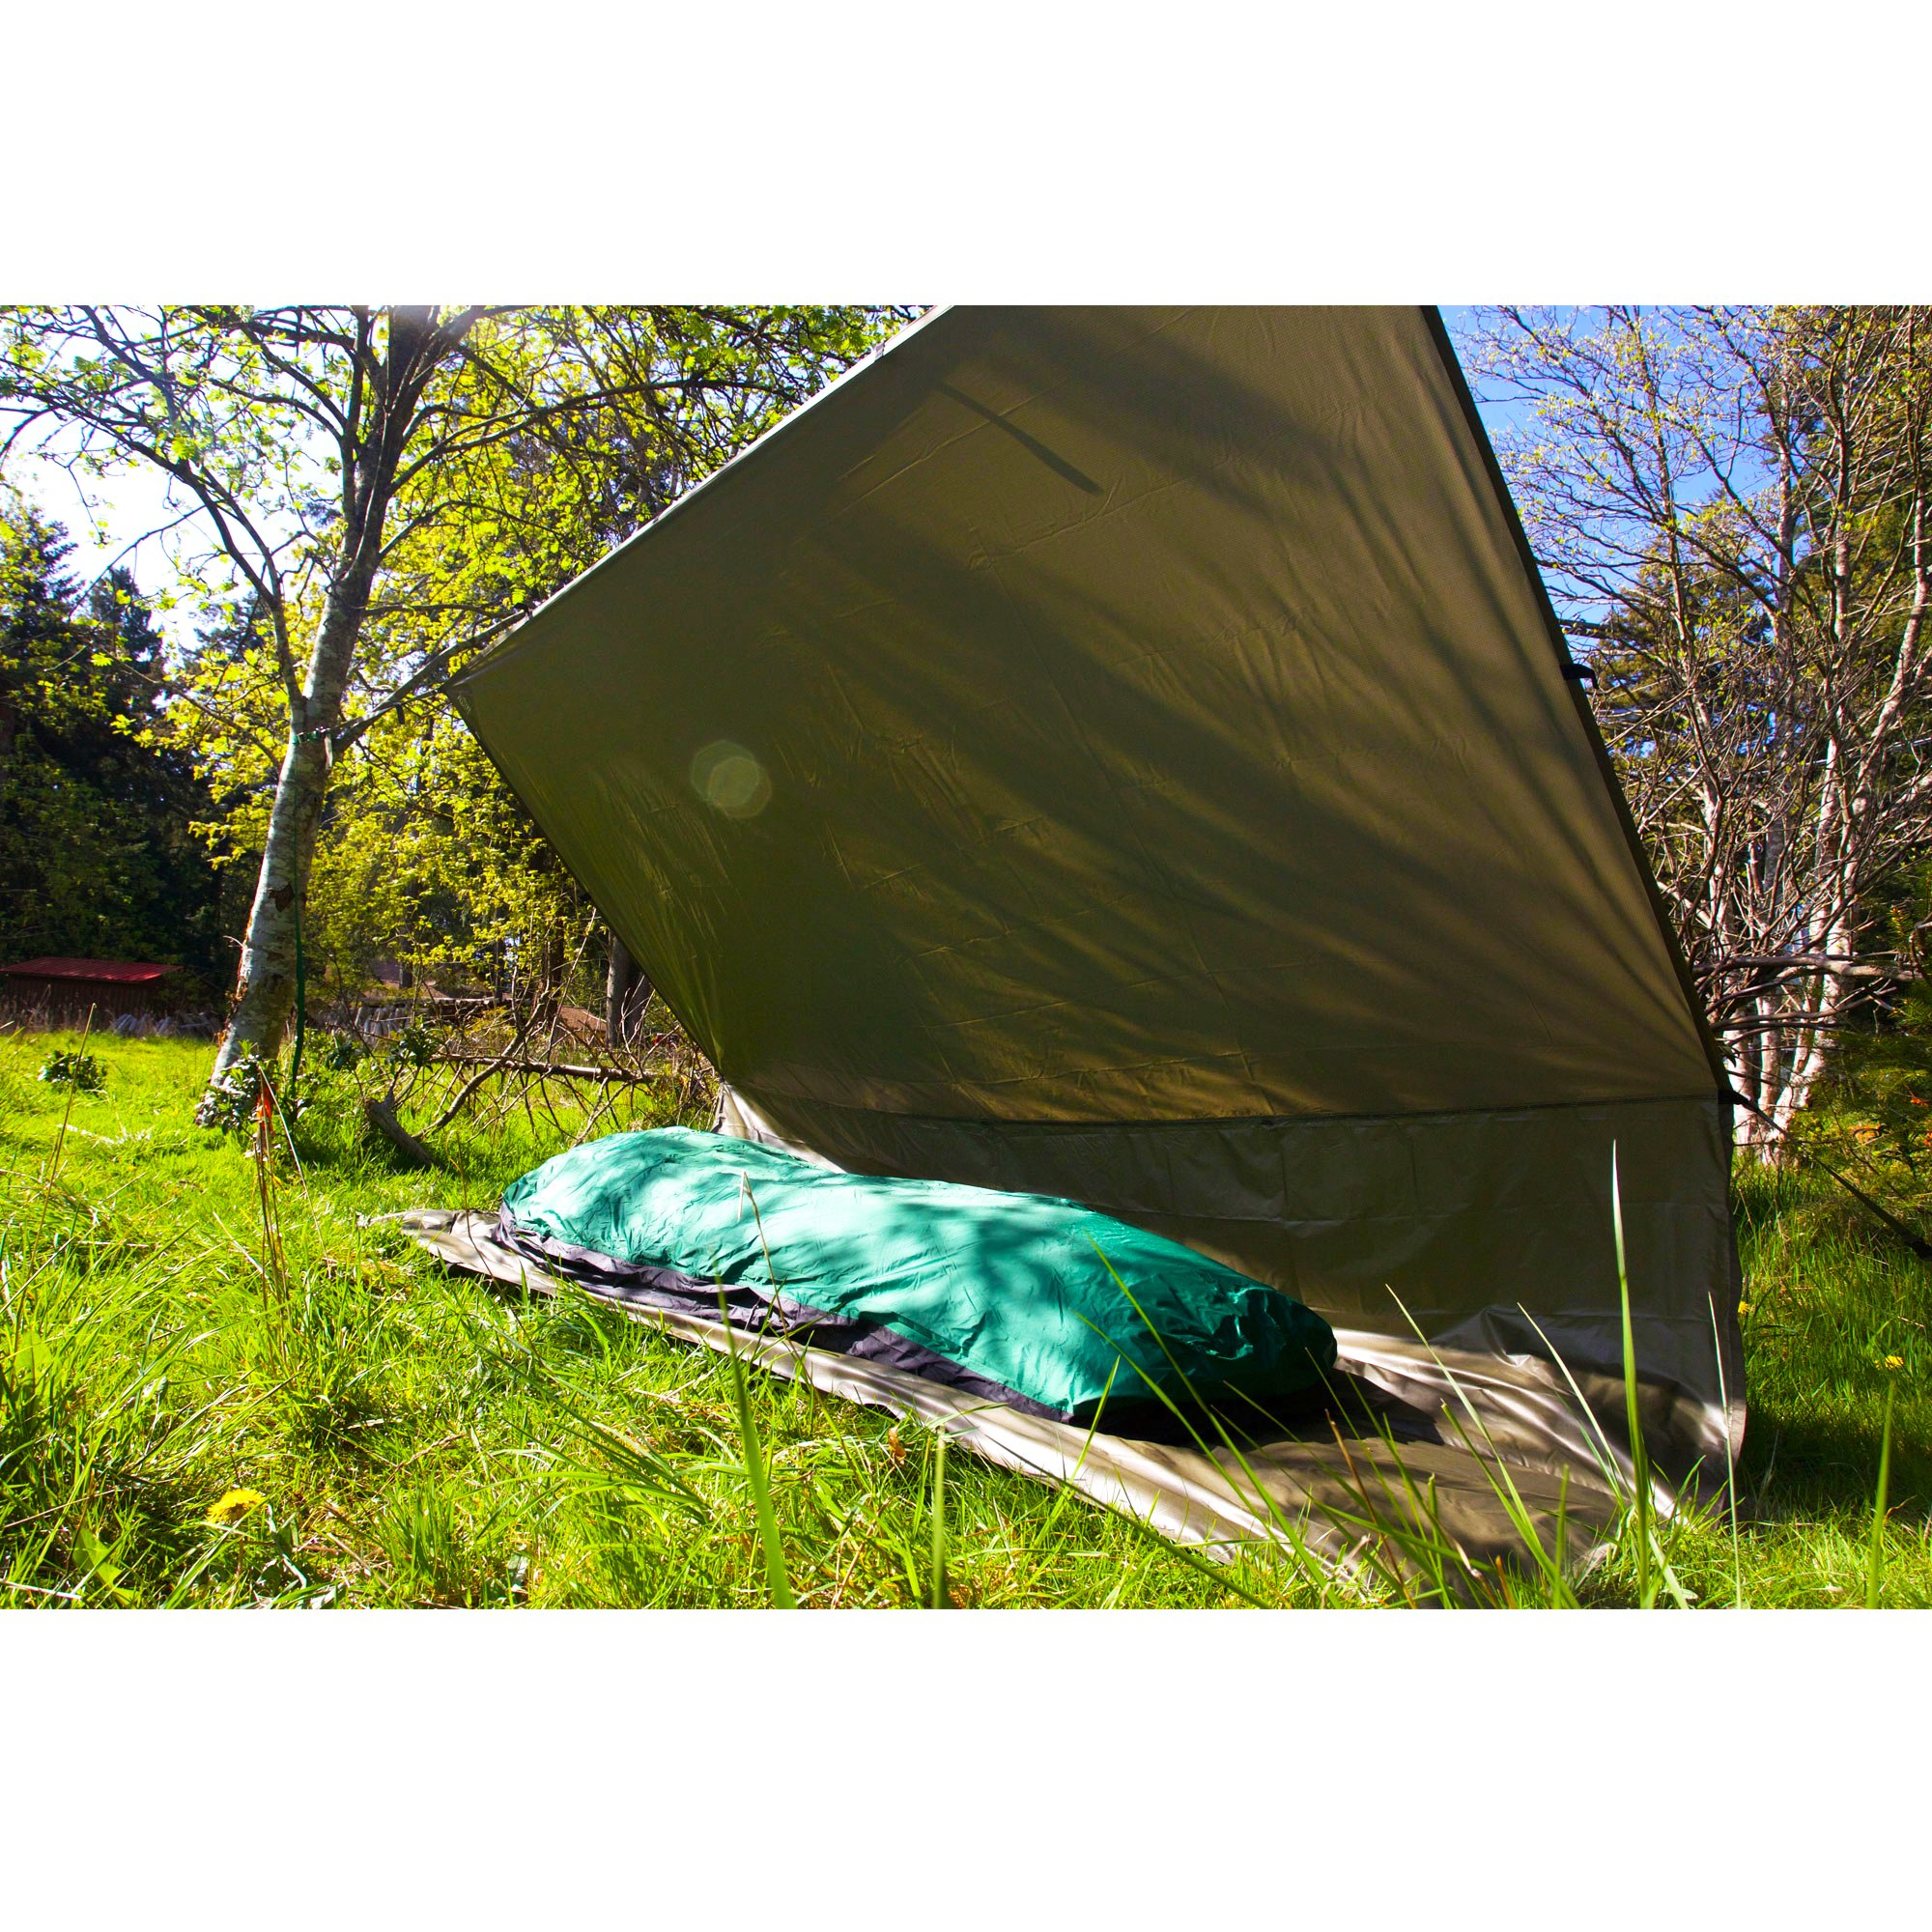 Aqua-Quest The Mummy Combo 2-pc Camping System - 100% Waterproof - 13 x 10 ft Large Guide Tarp - Green by Aqua Quest (Image #5)